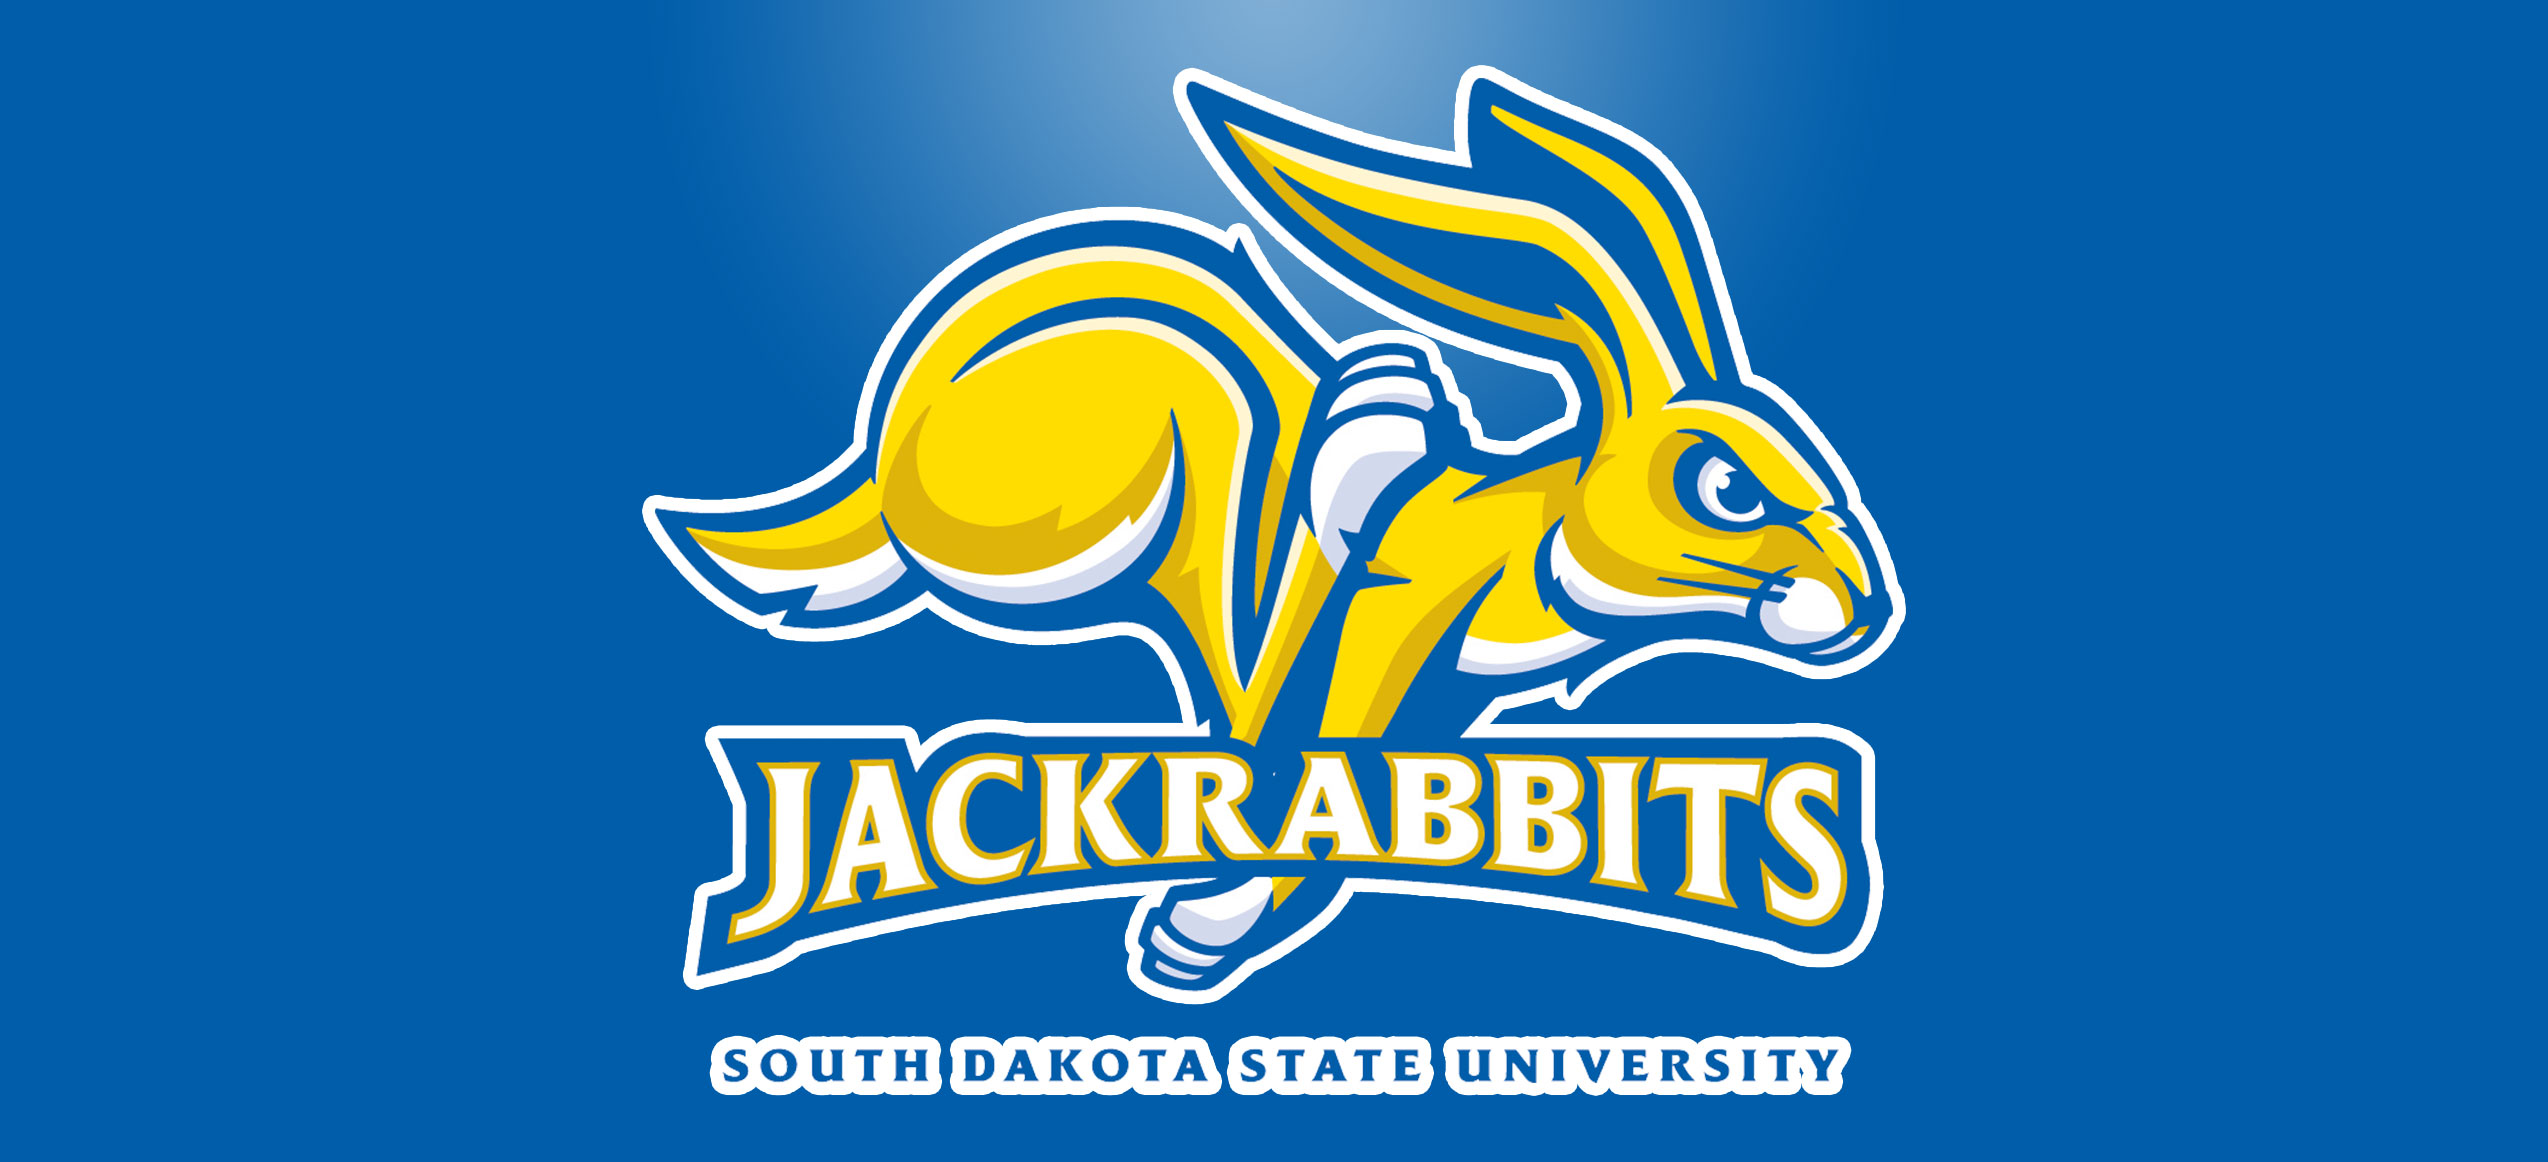 SDSU Jackrabbits South Dakota State University Jacks